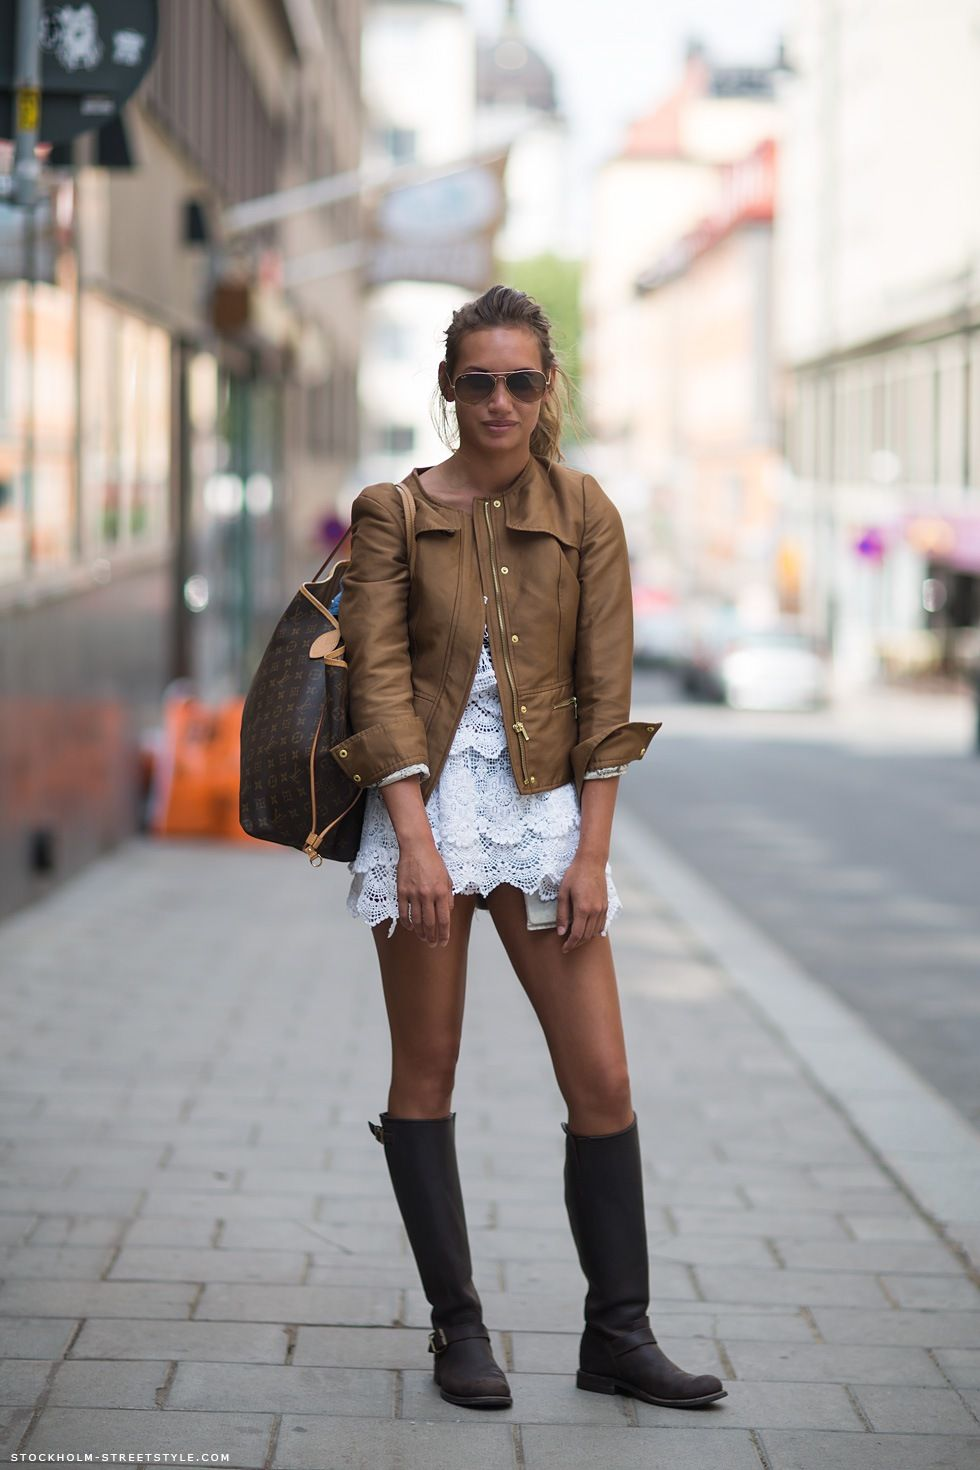 White dress boots - Sara In The Lace White Dress Camel Jacket And Brown High Boots And A Lv